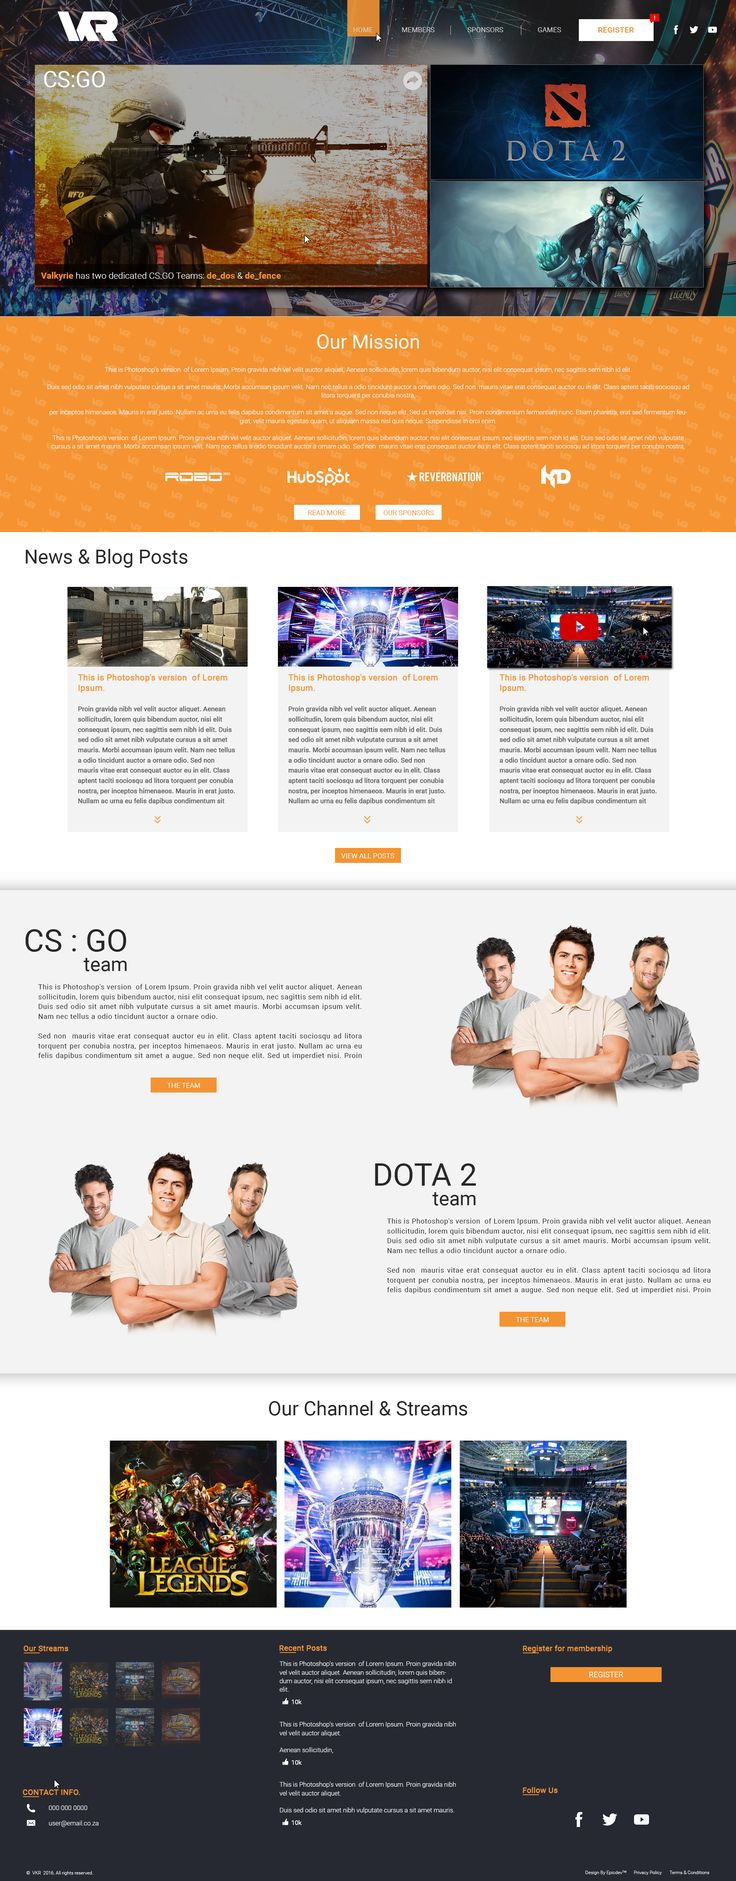 Another awesome concept design by Duncan Meyer at Epicdev. Check out some more web designs from our Portfolio http://epicdev.co.za/agile-software-development